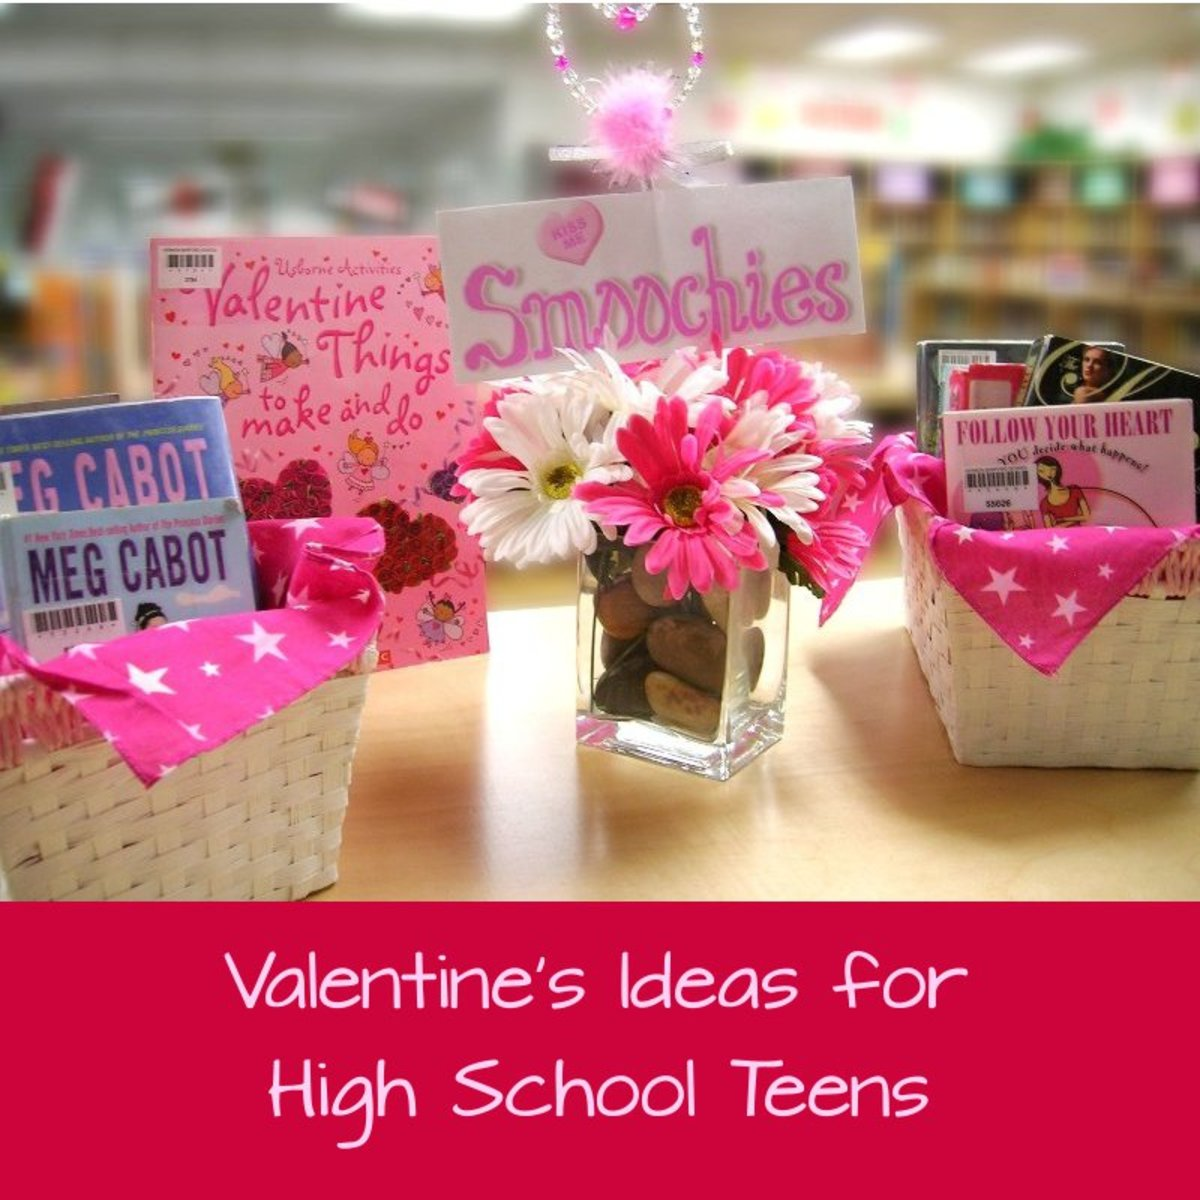 Valentines gifts for girl you just started dating 6